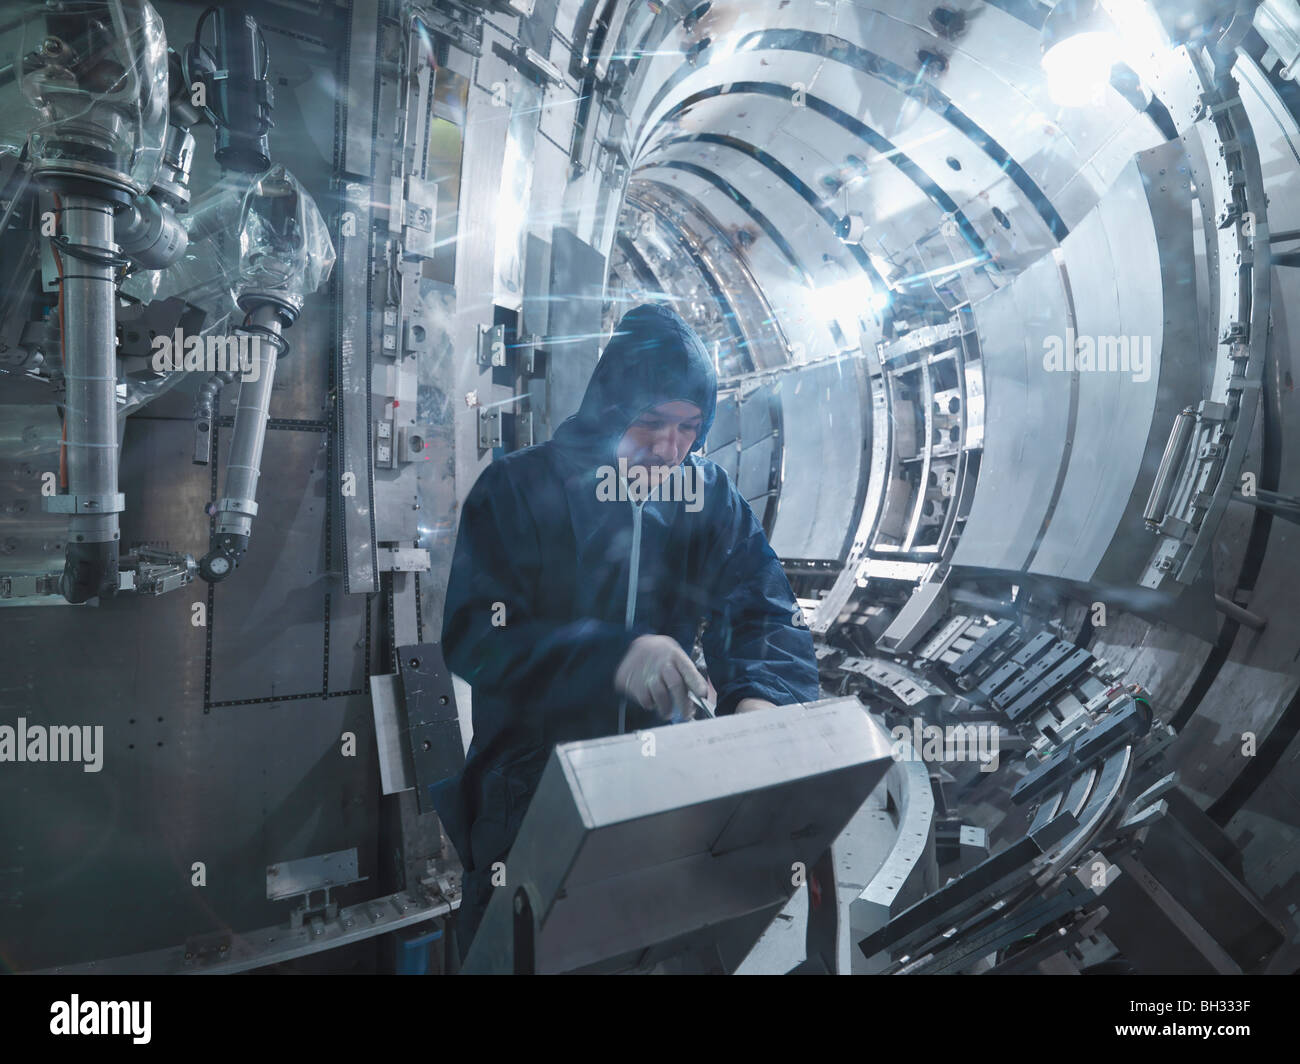 Scientist Working In A Fusion Reactor - Stock Image